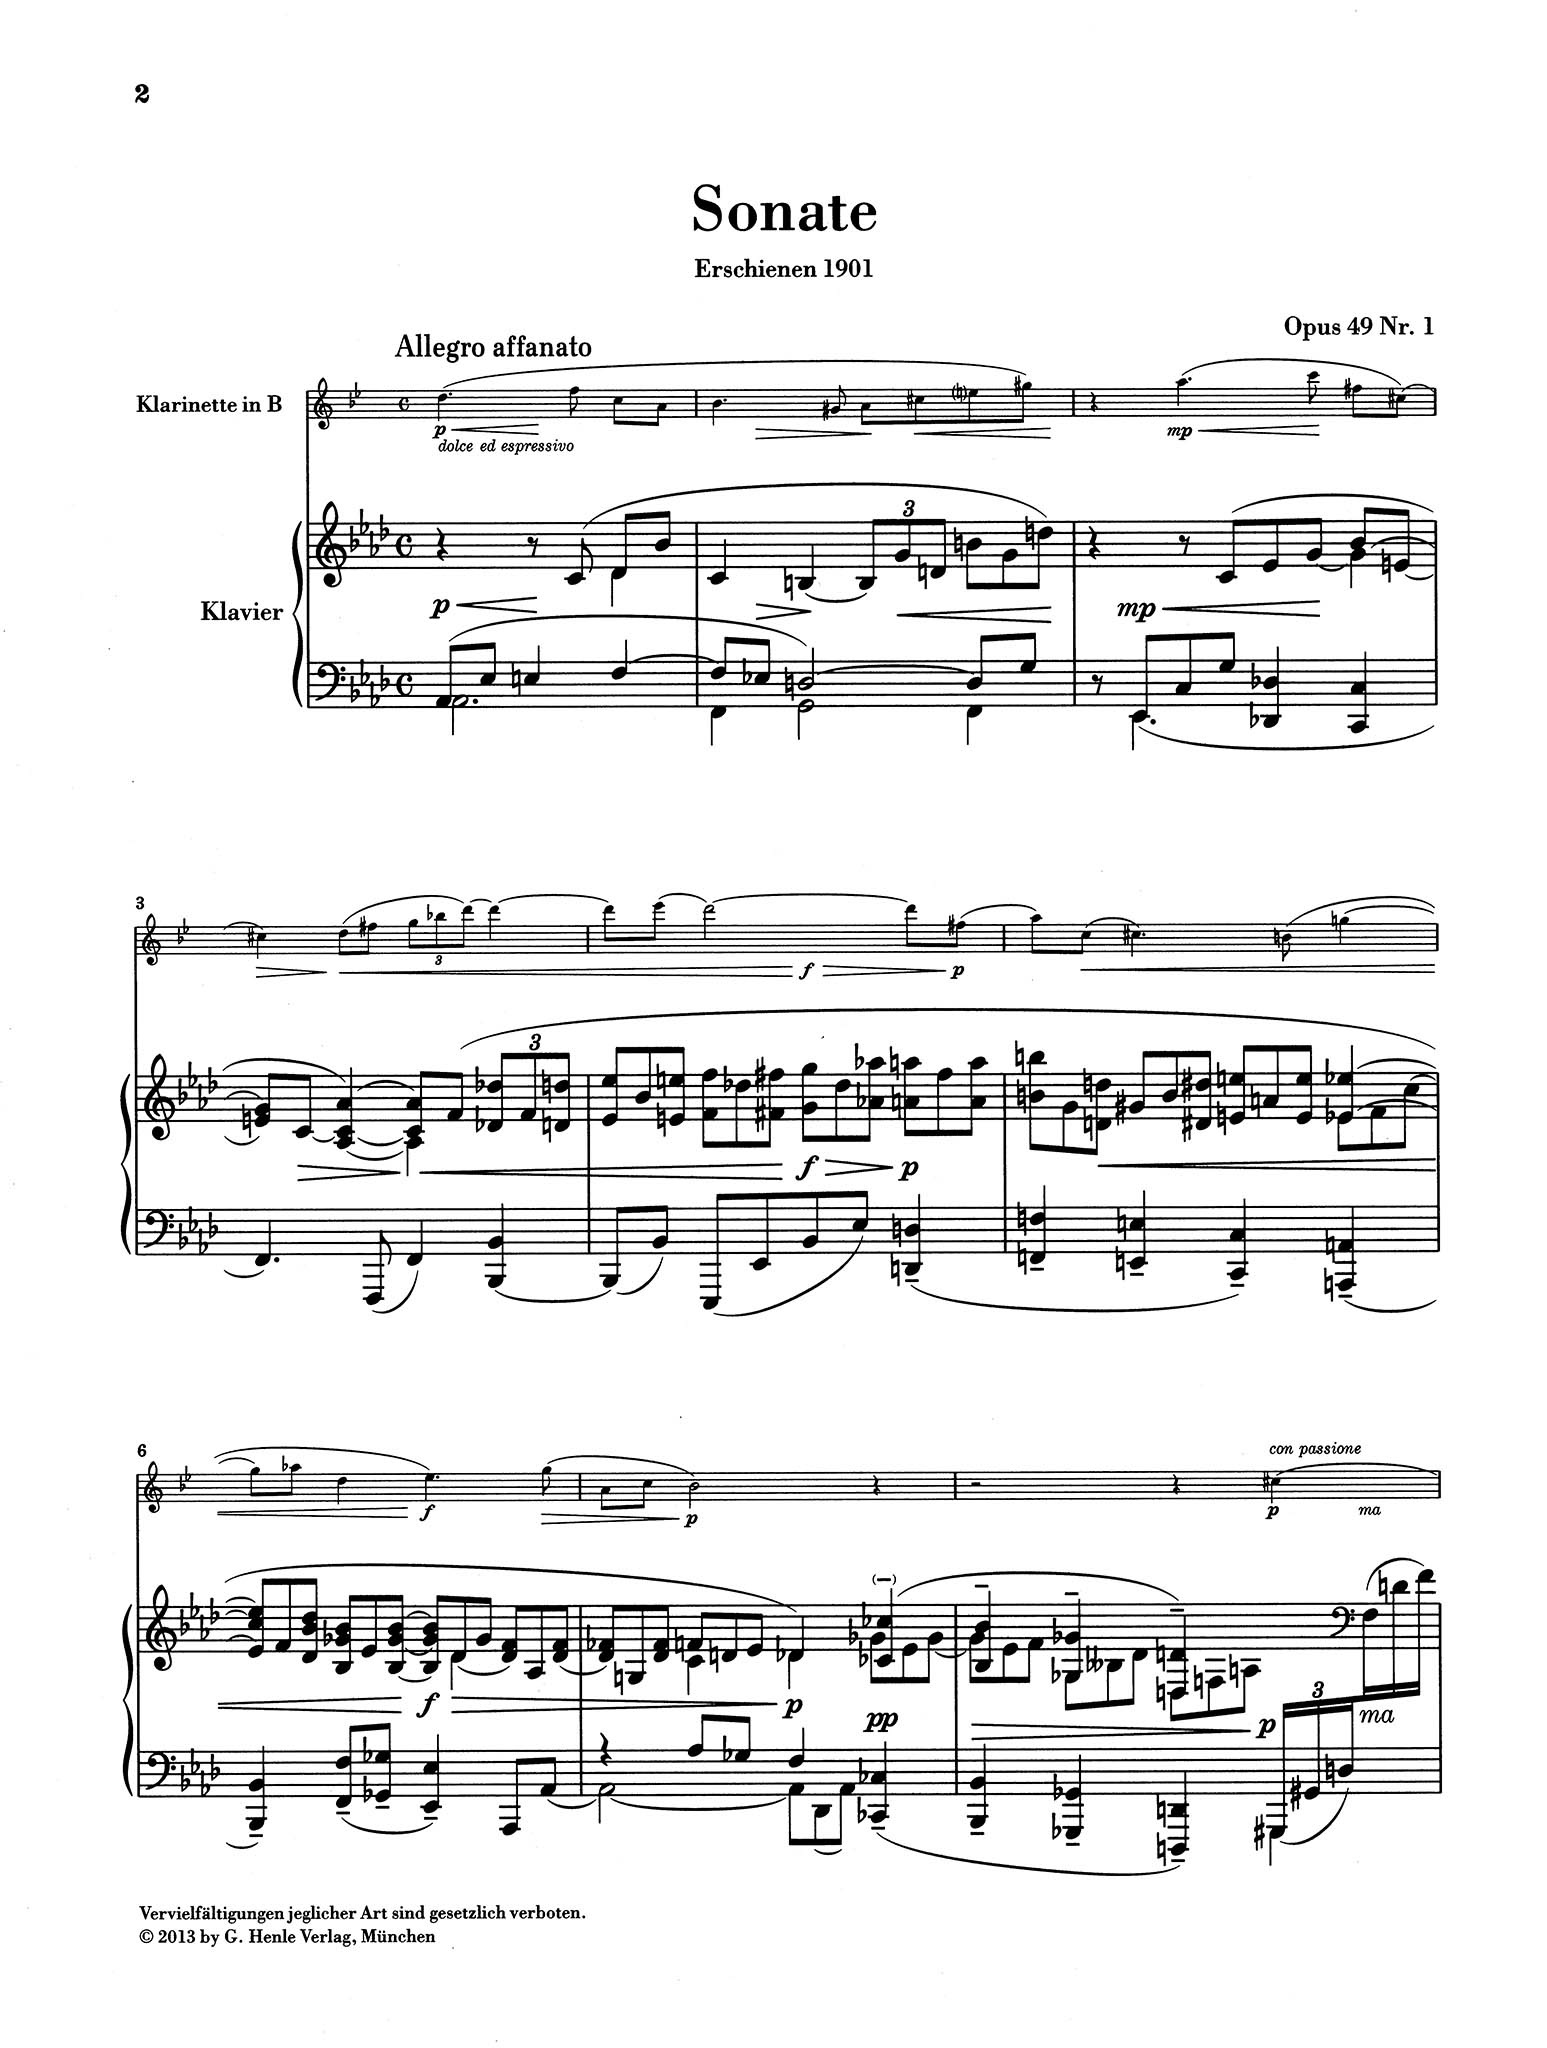 Sonata in A-flat Major, Op. 48 No. 1 - Movement 1